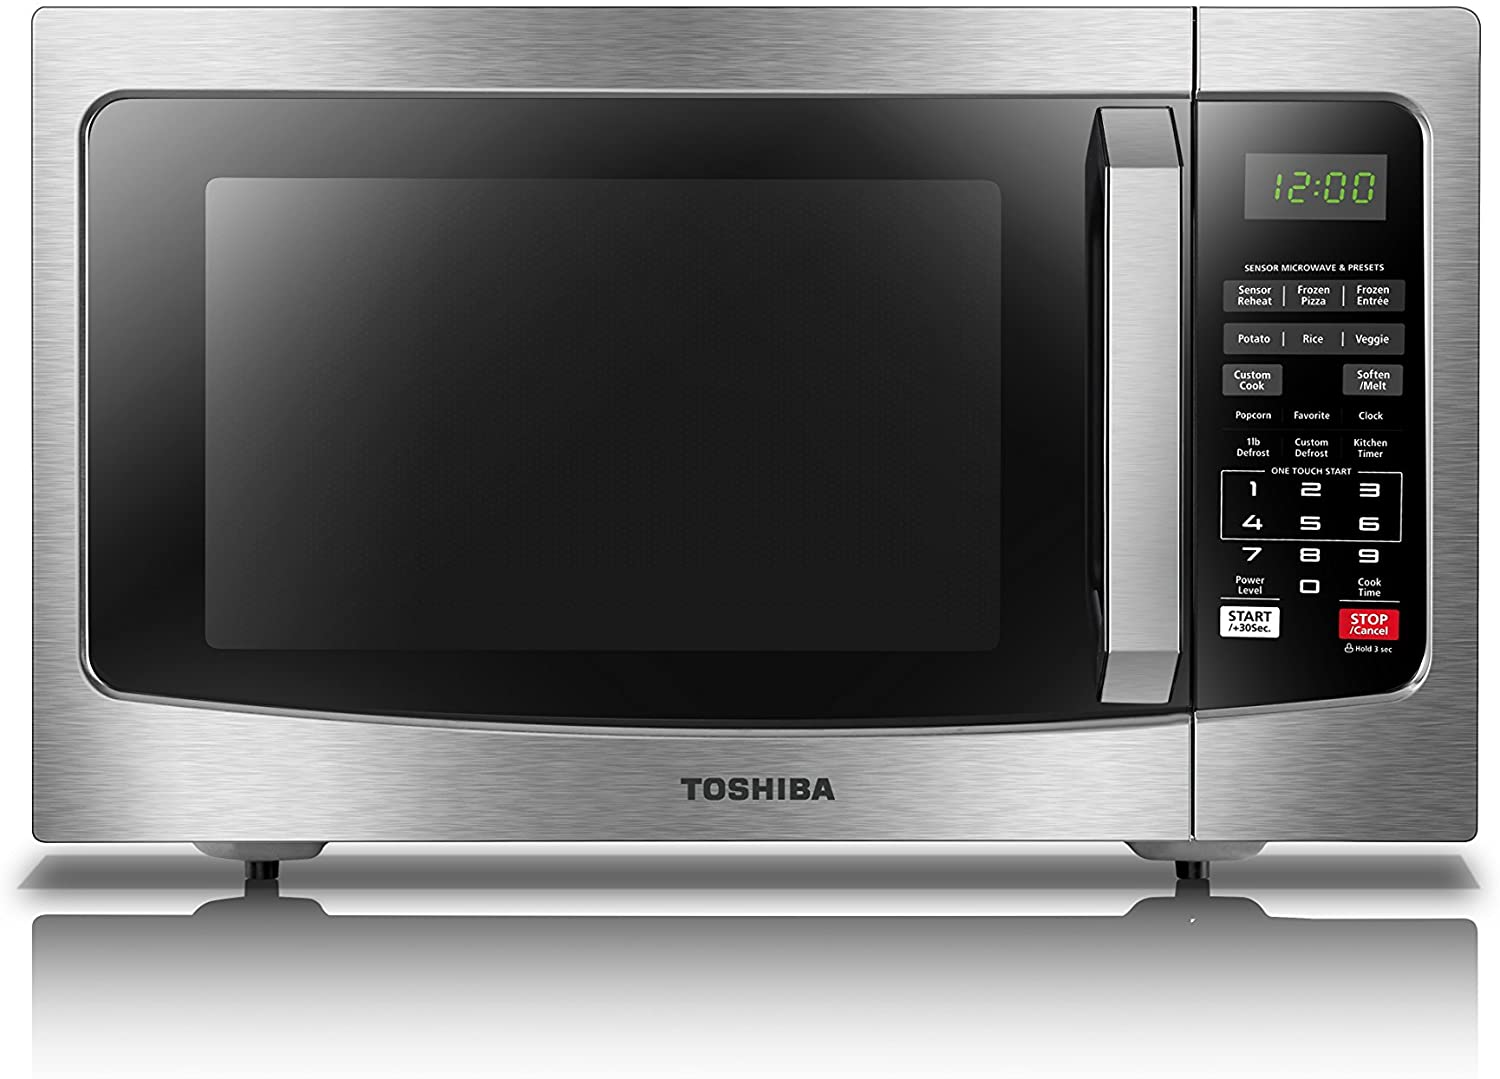 Toshiba 1.2 Cu.ft Smart Sensor